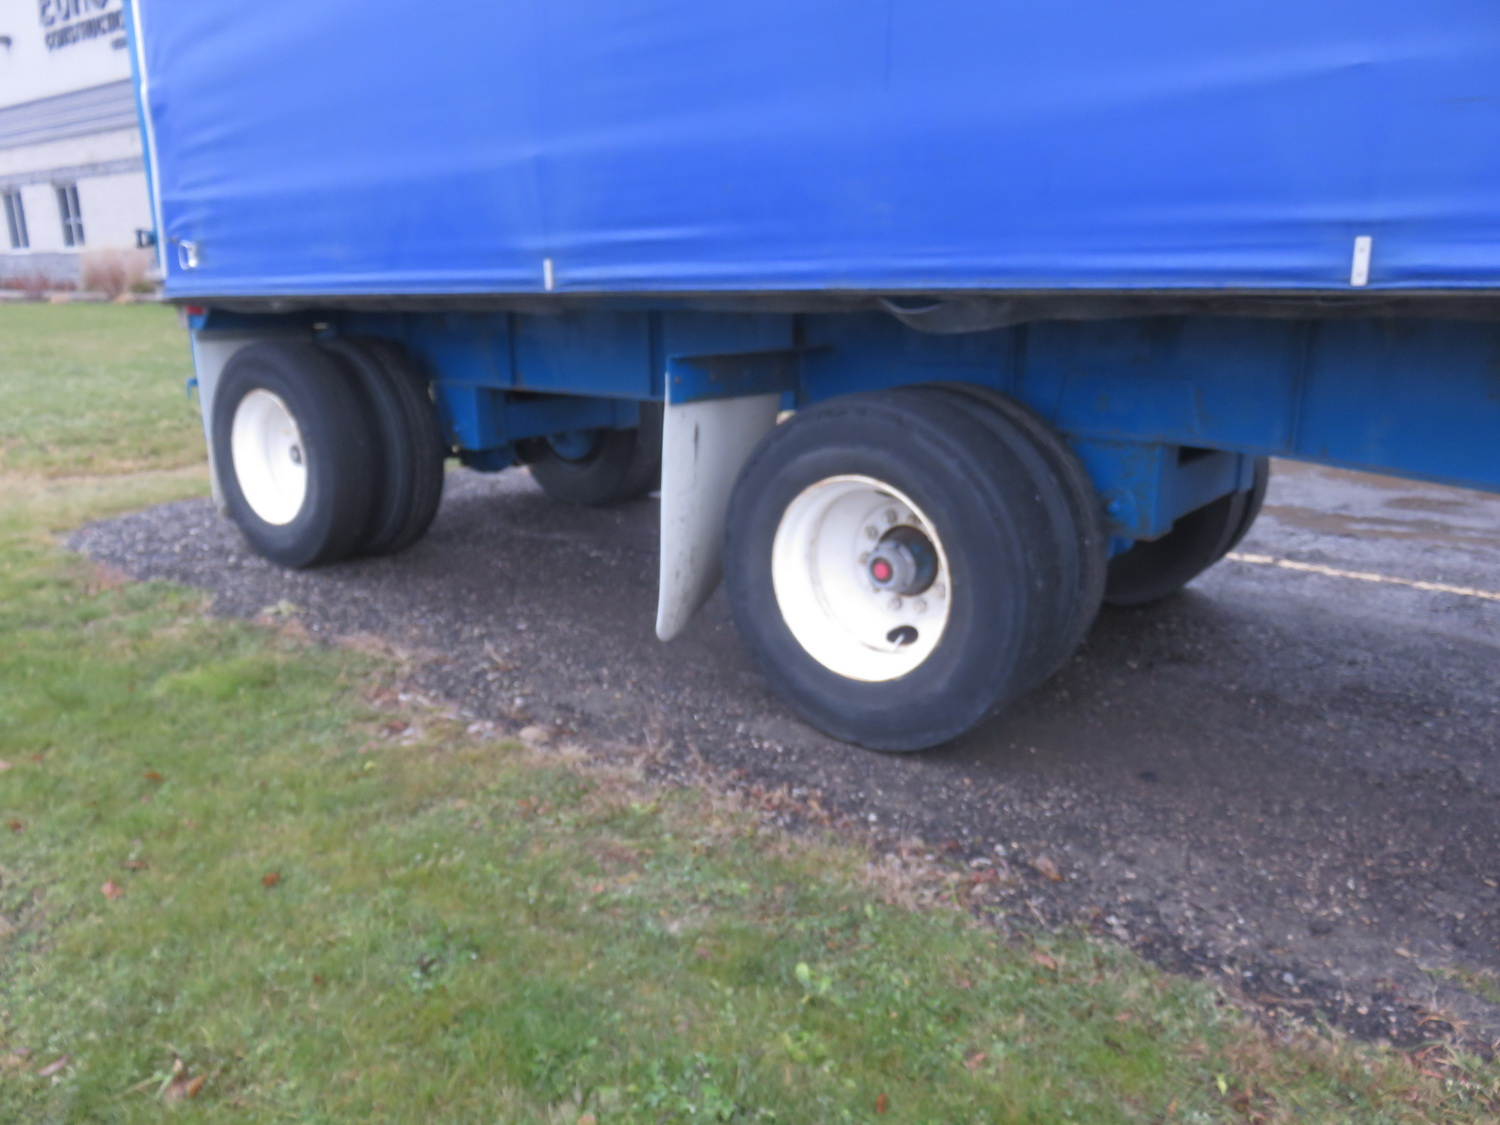 LODE KING 48' TANDEM AXLE BLUE CURTAIN SIDE TRAILER - S/N 2LDPA4829XC032084 - Image 4 of 6